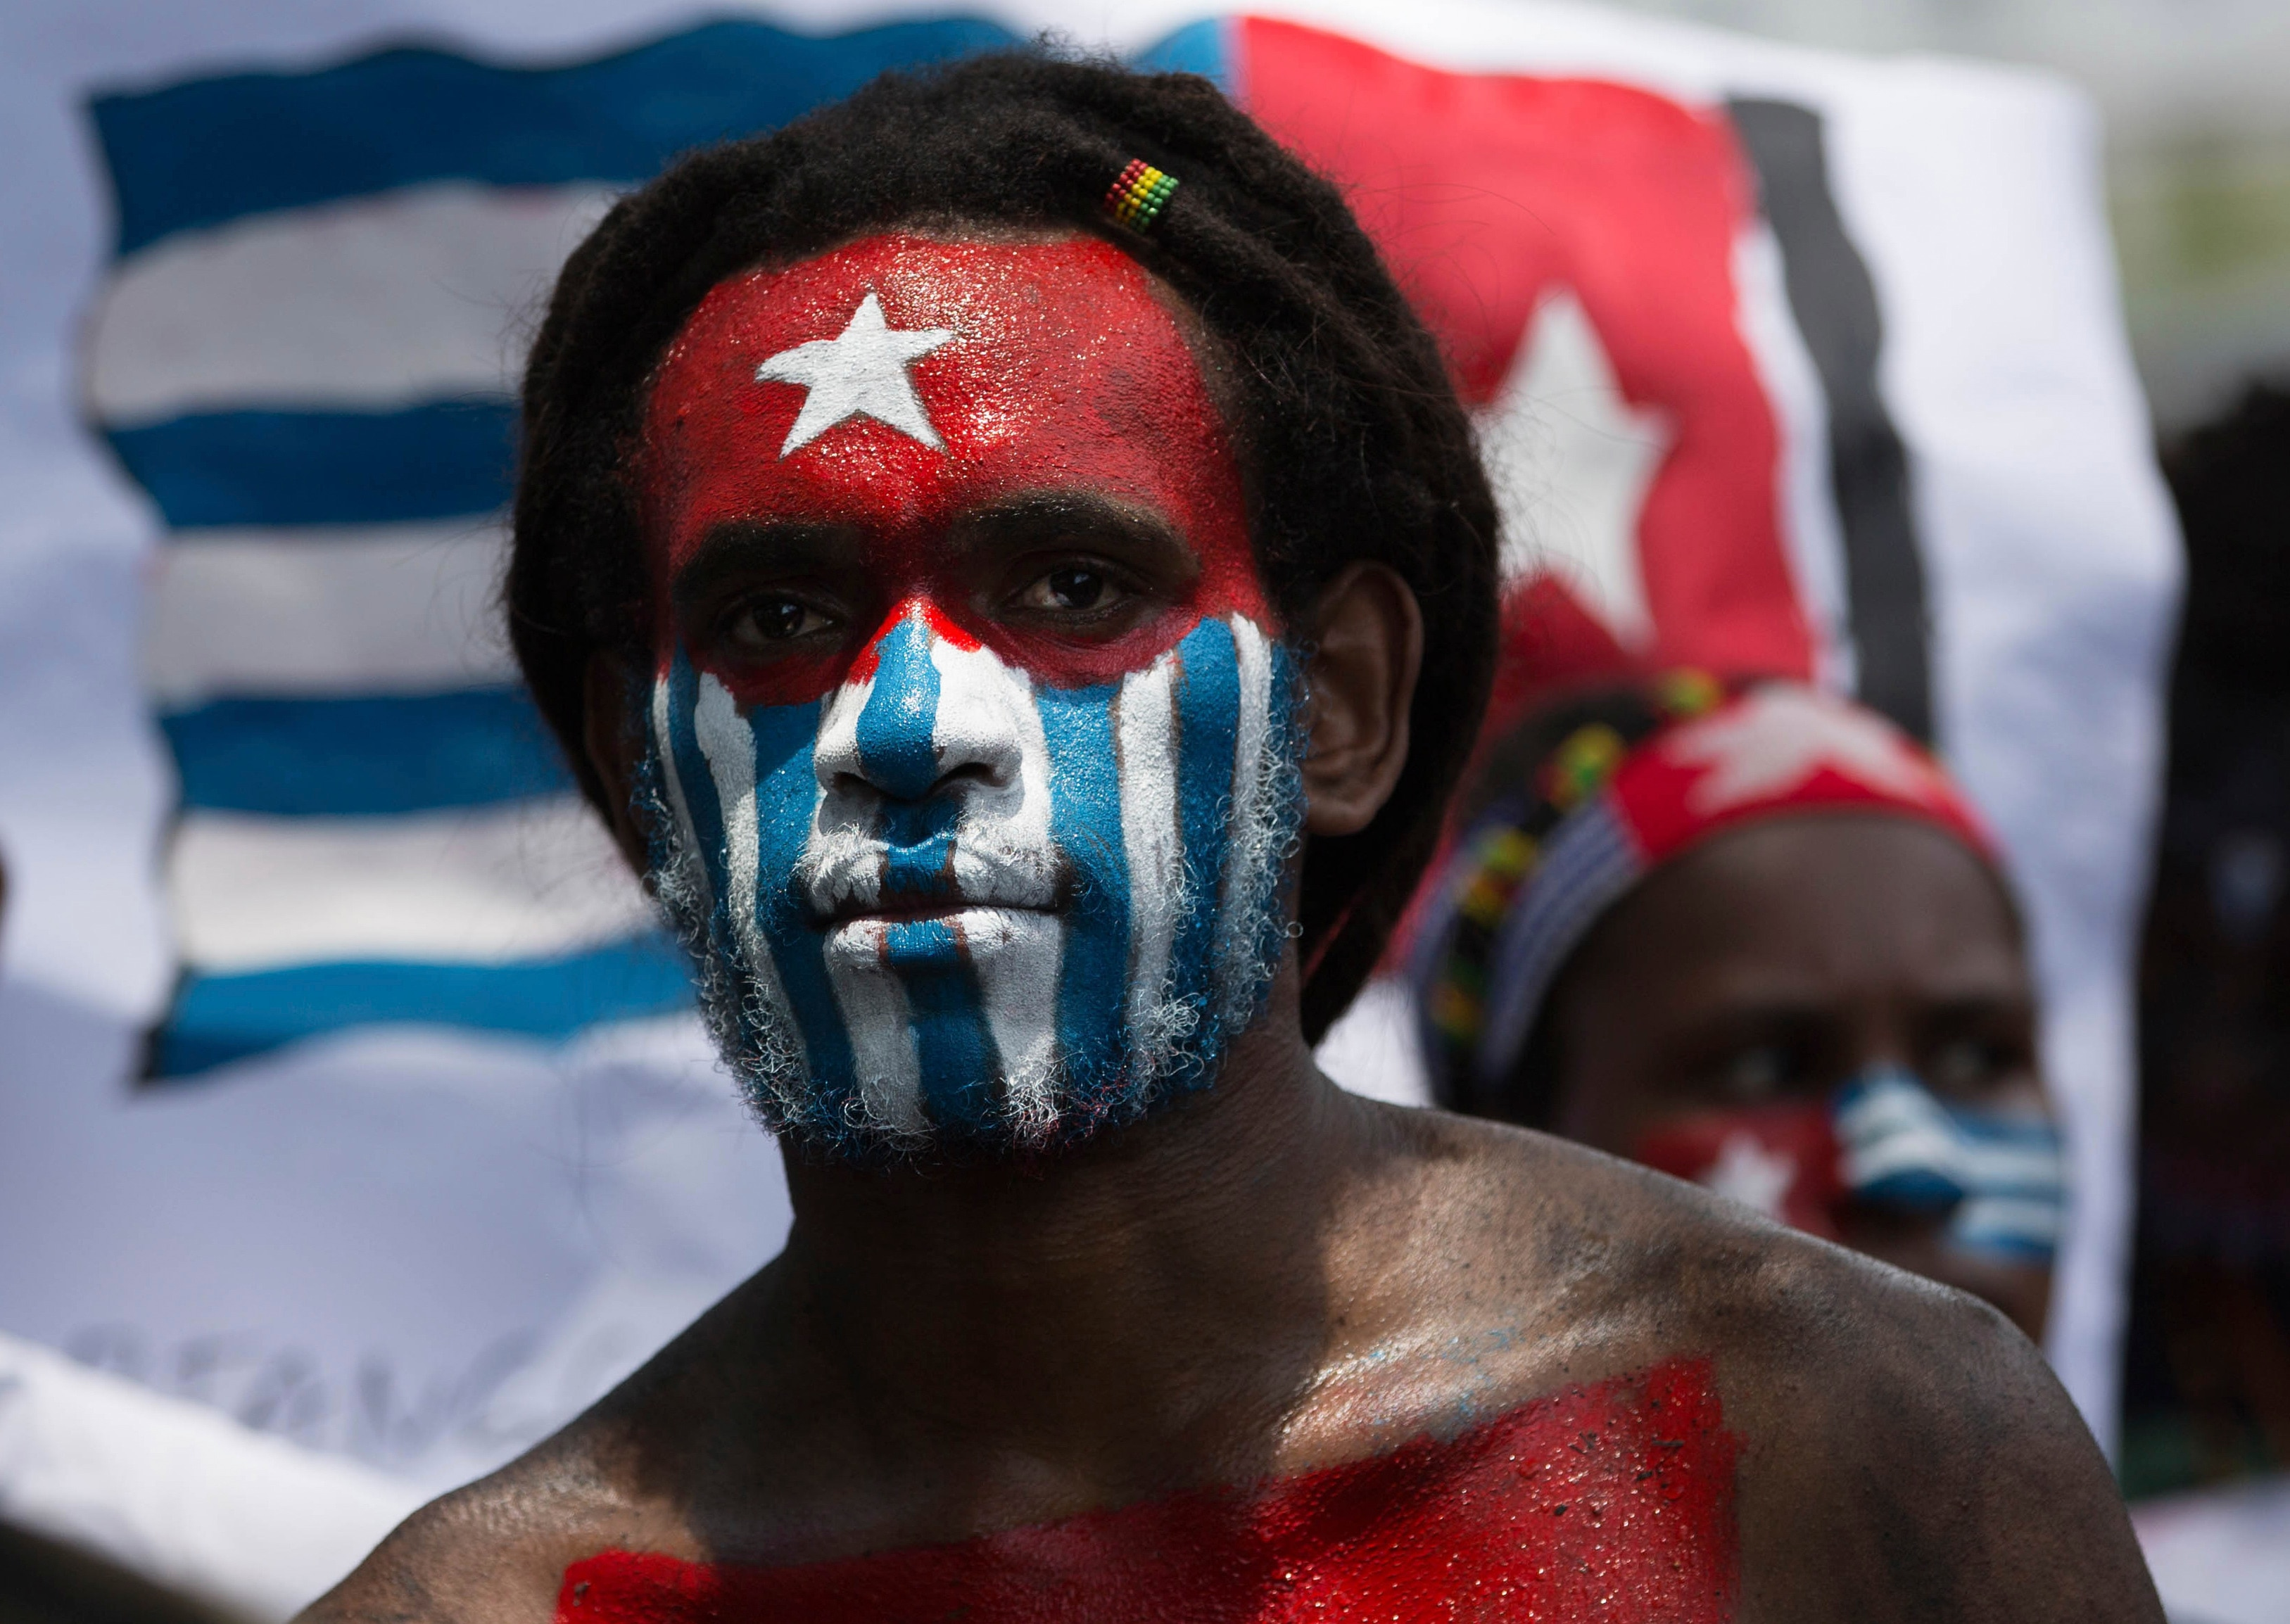 A Papuan student, with his body and face painted with the colors of the banned separatist 'Morning Star' flag.